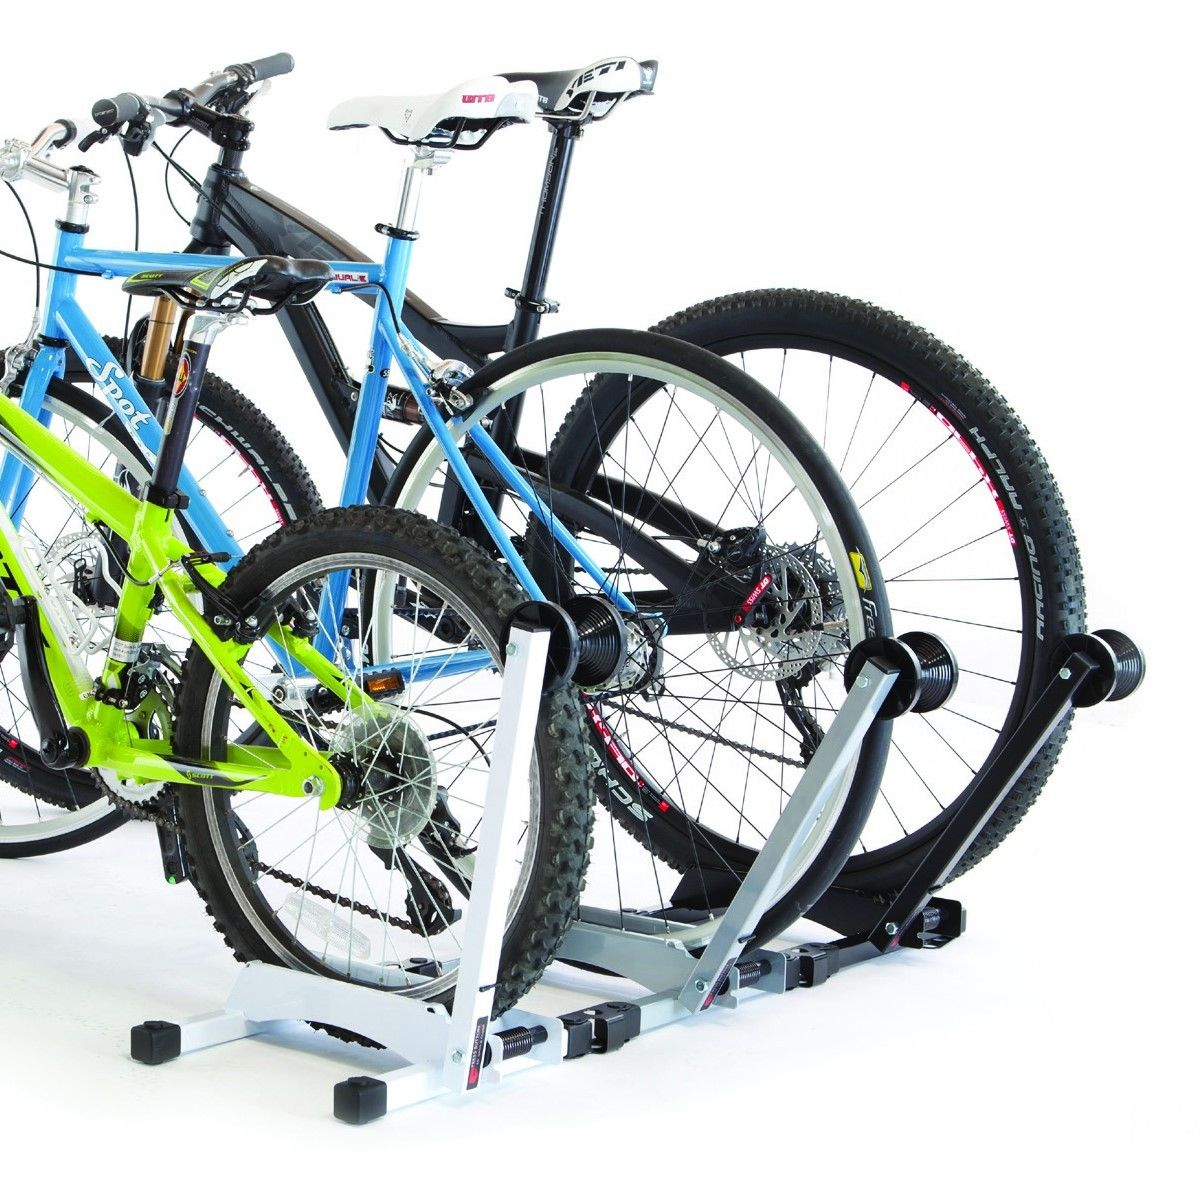 New Feedback Sports RAKK Floor Bicycle Display Storage Stand